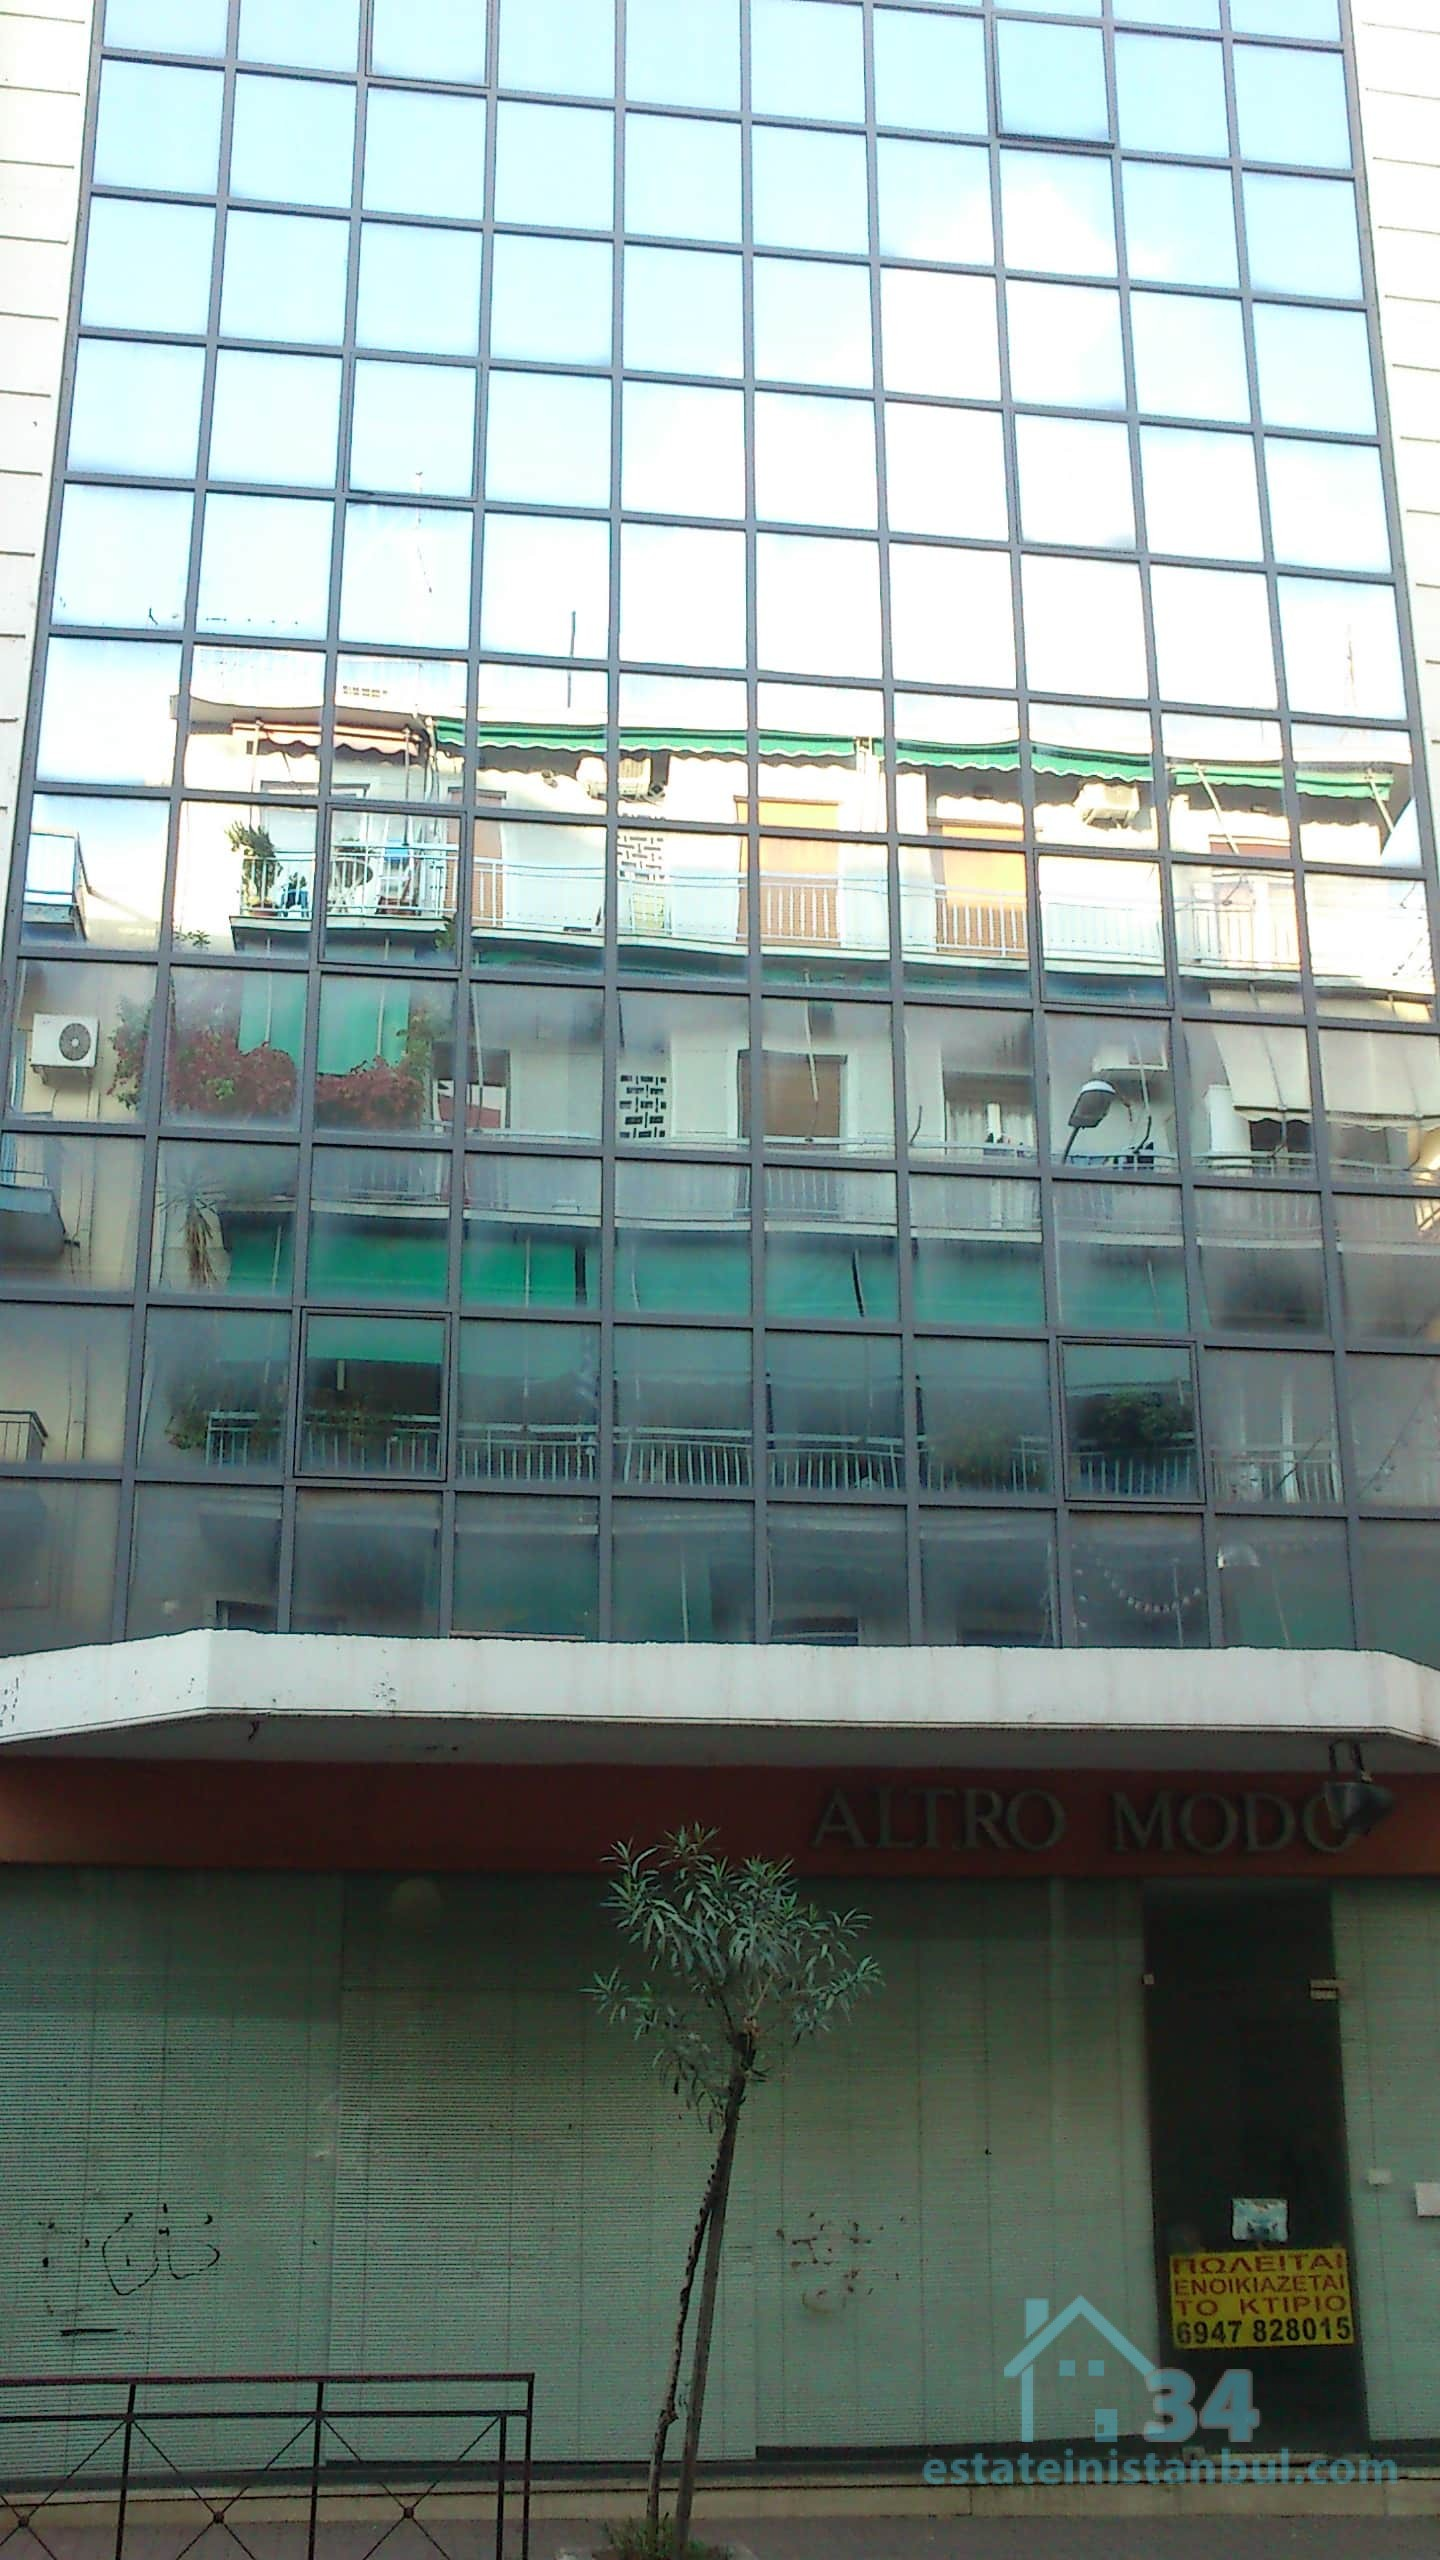 Real Estate Business Opportunity: A four-storey building for Sale Athens, Greece